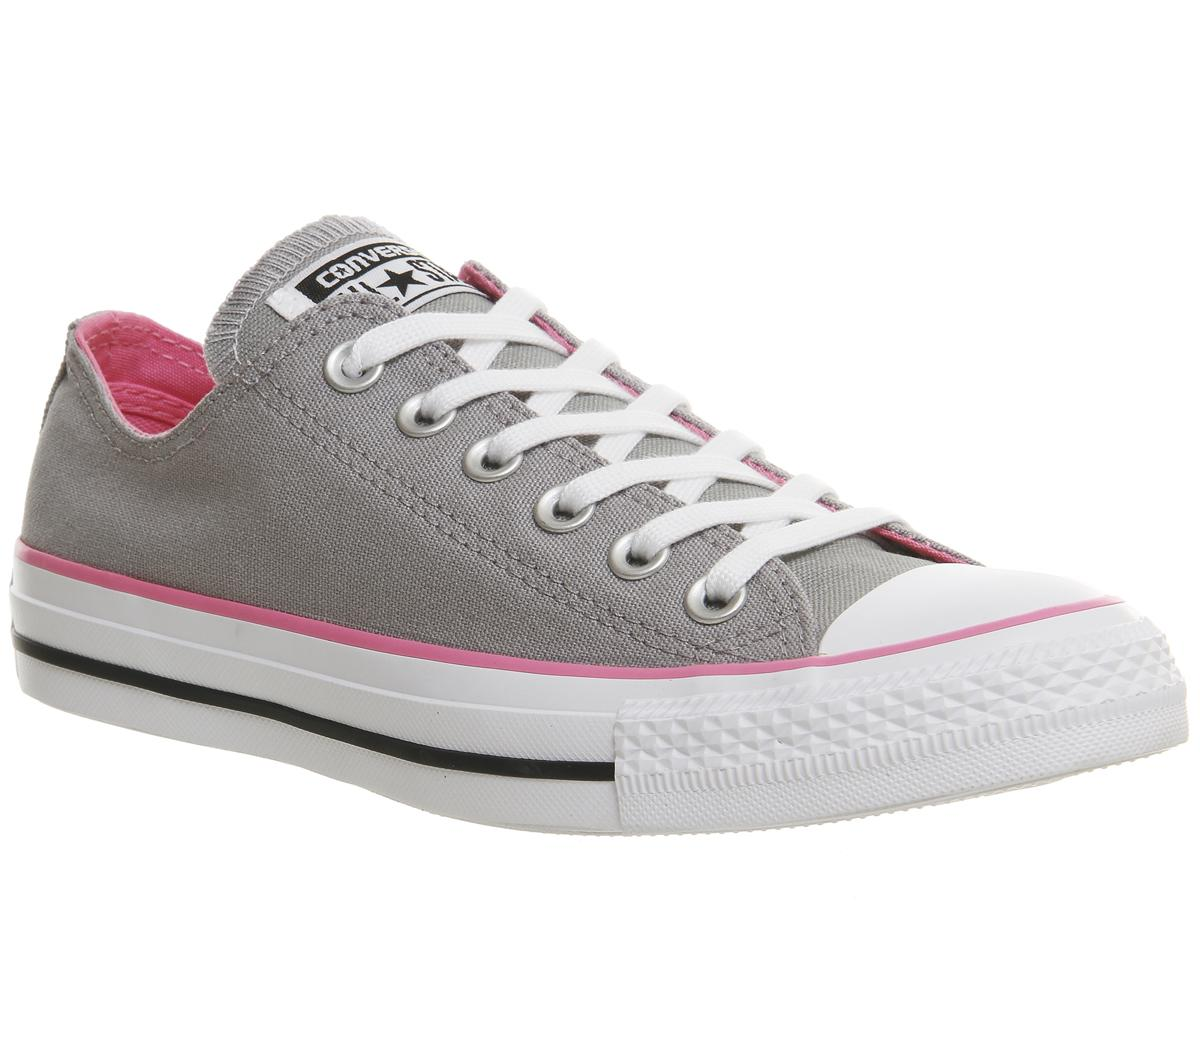 Womens Converse All Star Low Grey Pink